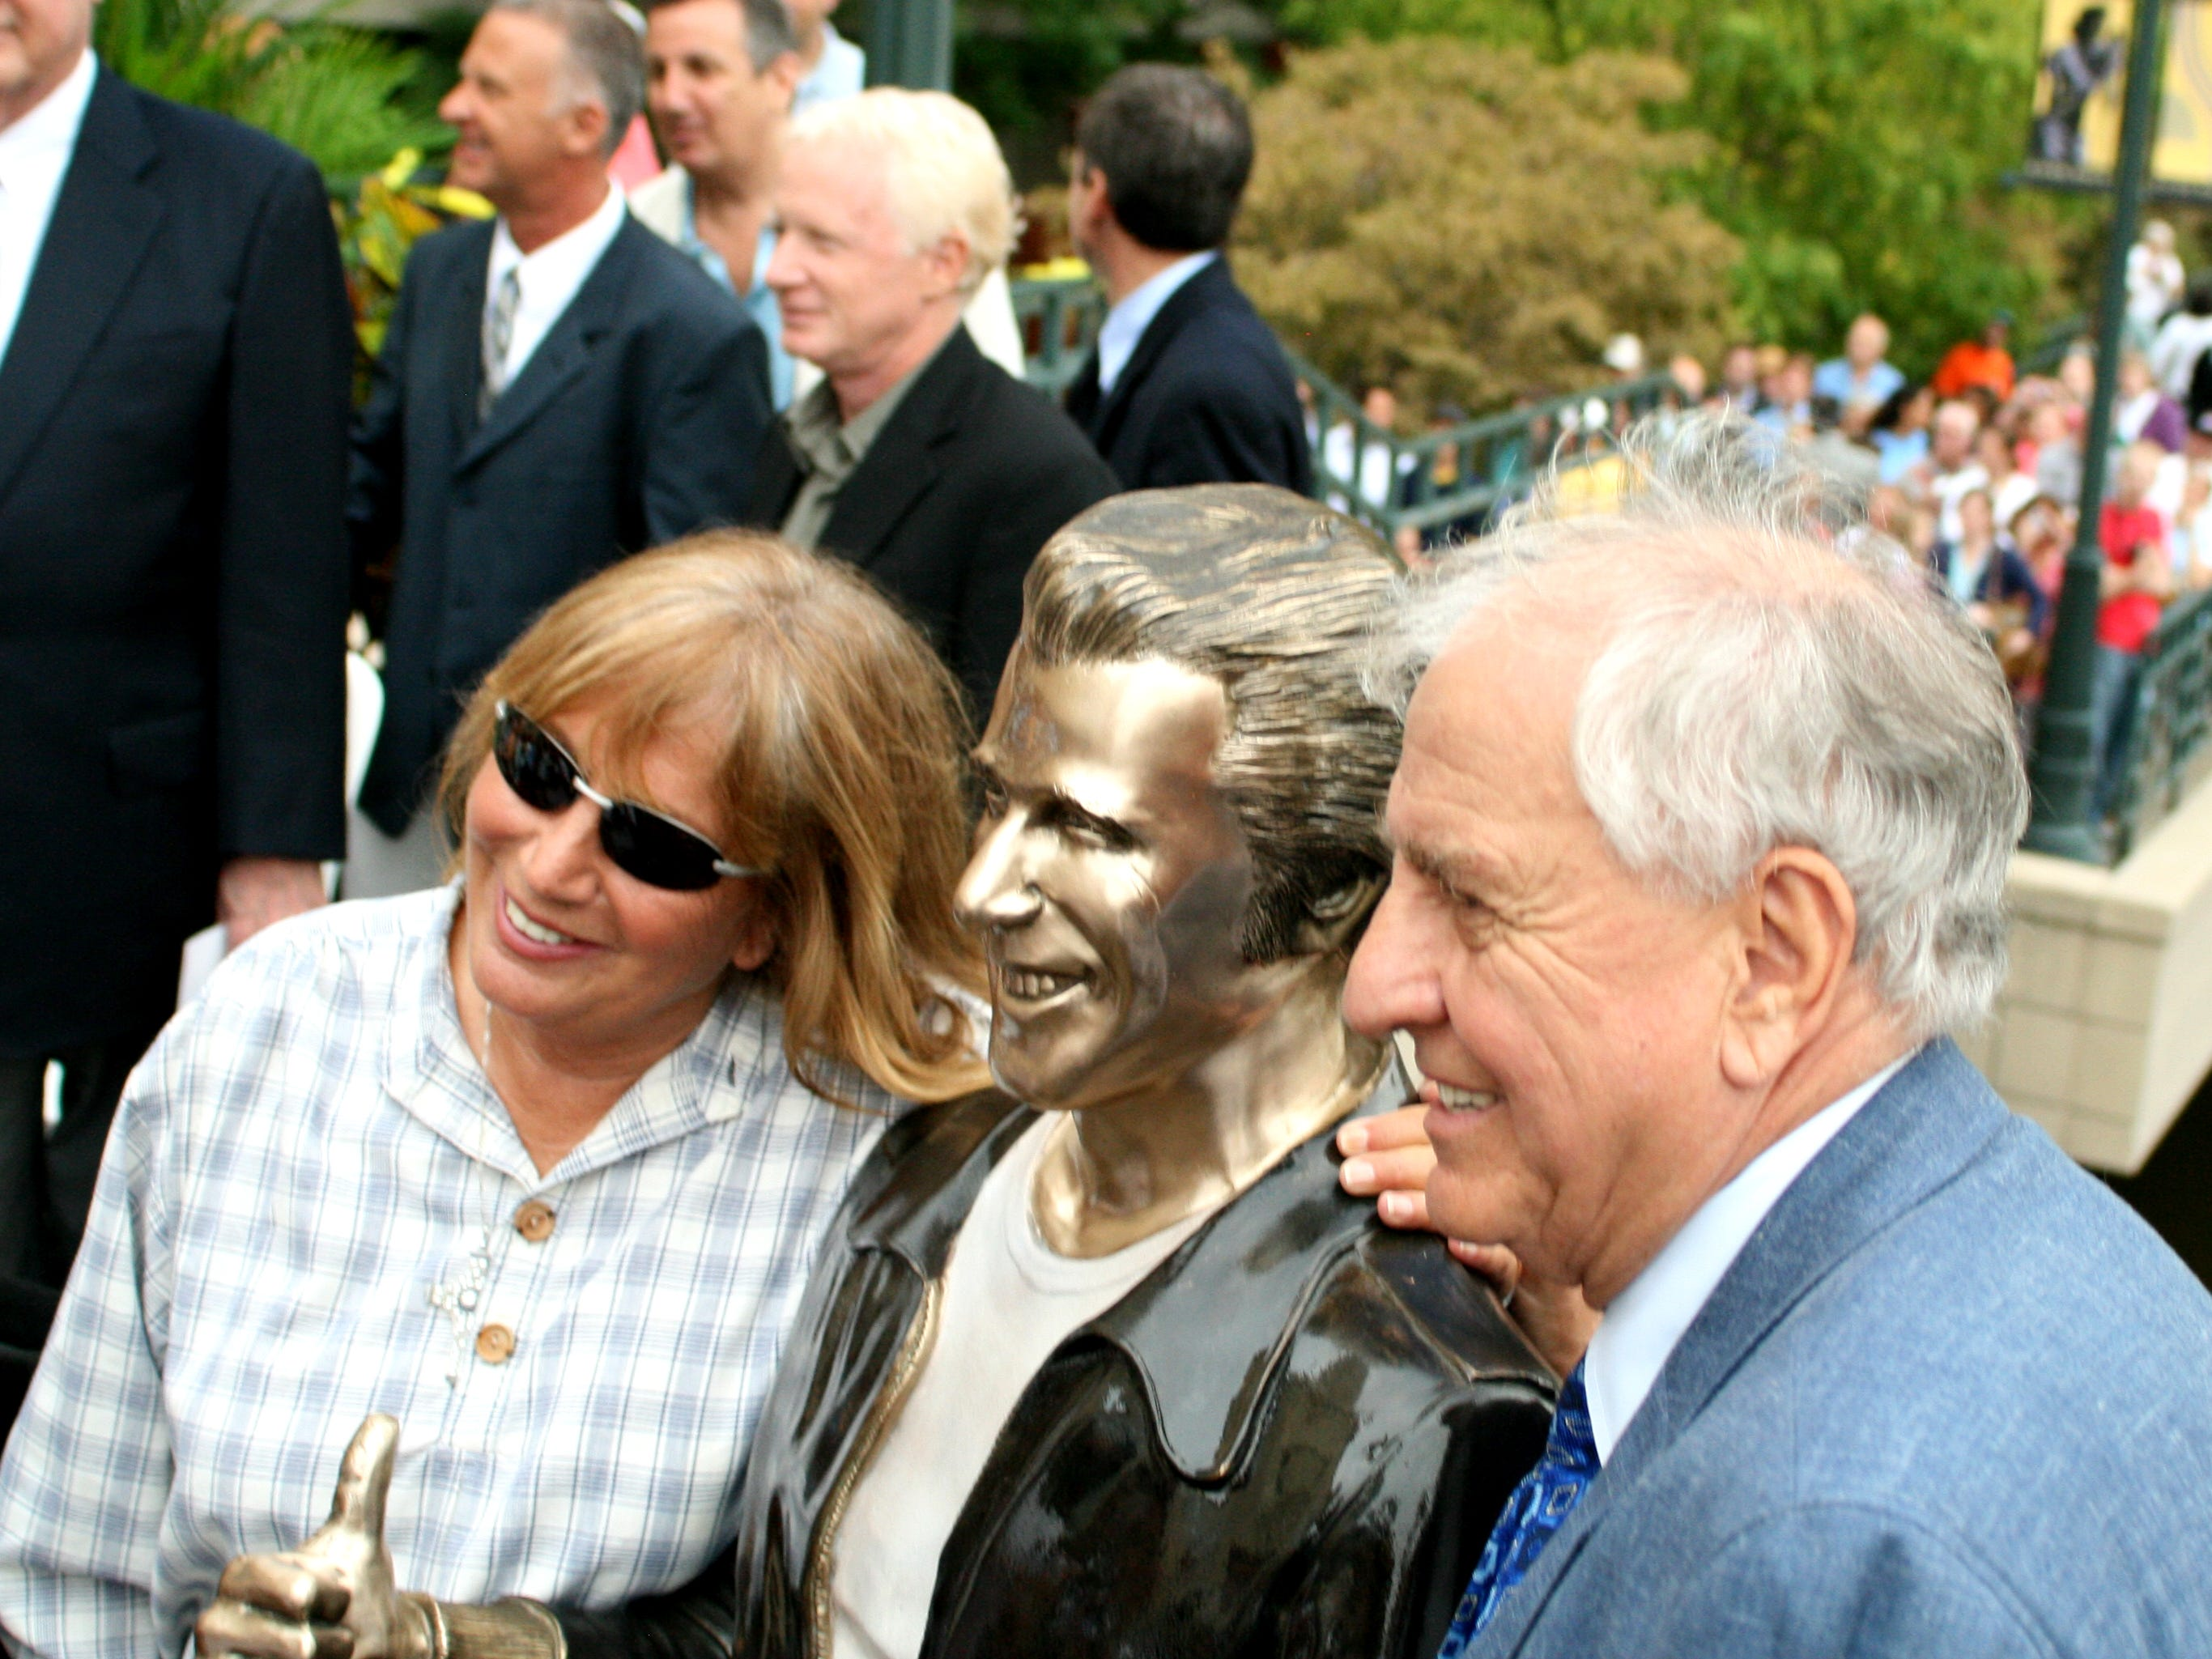 """Penny Marshall (left) poses with her brother, """"Happy Days"""" creator Garry Marshall, as they stand with a bronze statue of the """"Happy Days"""" character Arthur Fonzarelli, also known as """"The Fonz,"""" at the """"Bronz Fonz's"""" unveiling in Milwaukee on Aug. 19, 2008"""